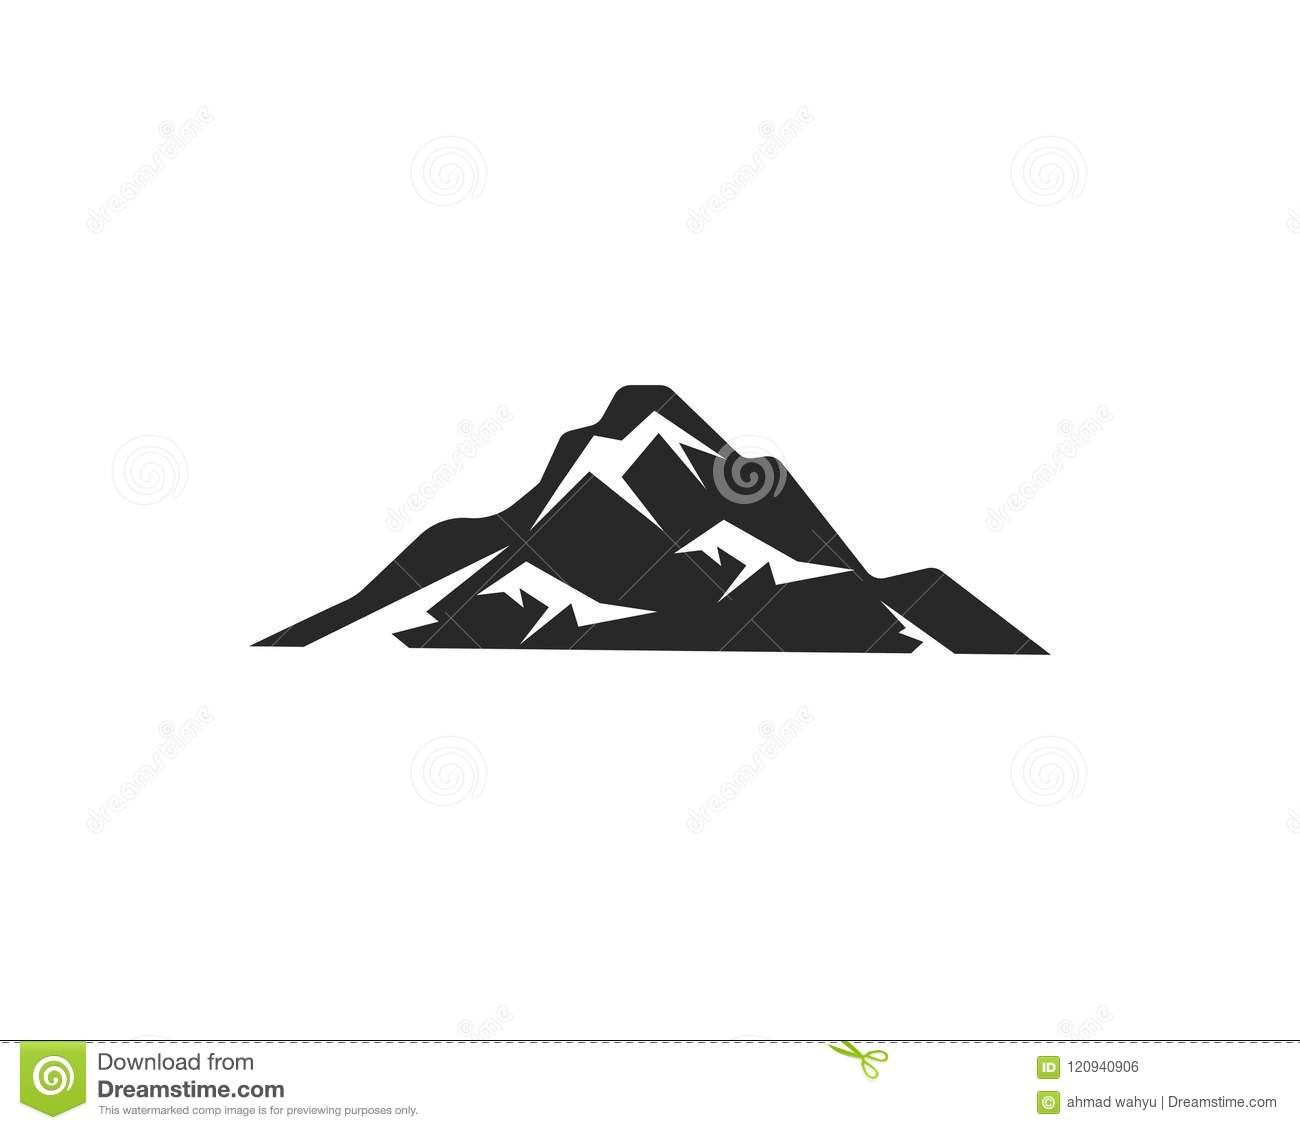 Mountain Icon Logo Business Template Stock Vector Illustration Of Design Isolated 120940906 Download the free graphic resources in the form of png, eps, ai. https www dreamstime com mountain icon logo business template vector mountain icon logo business template image120940906